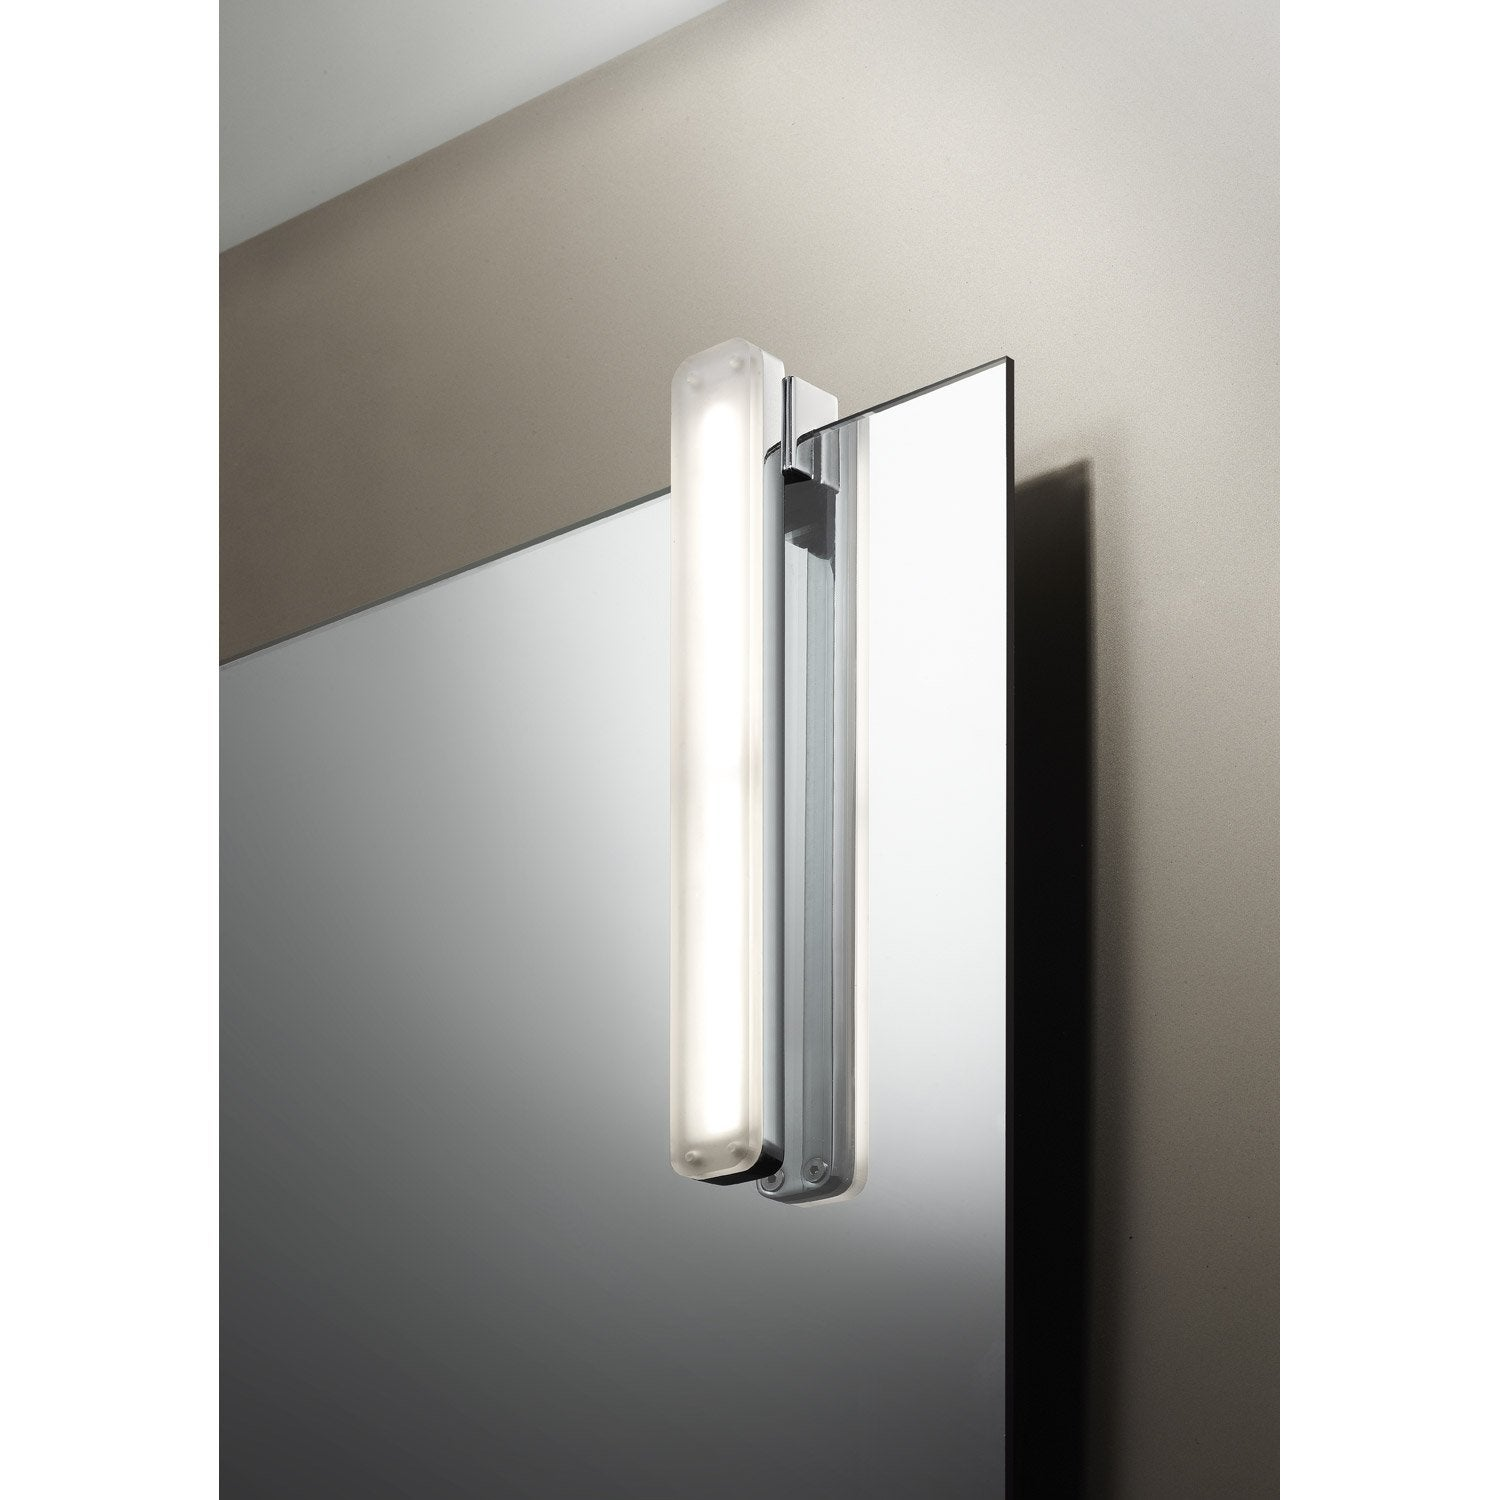 Awesome spot miroir salle de bain gallery awesome for Miroir led salle de bain